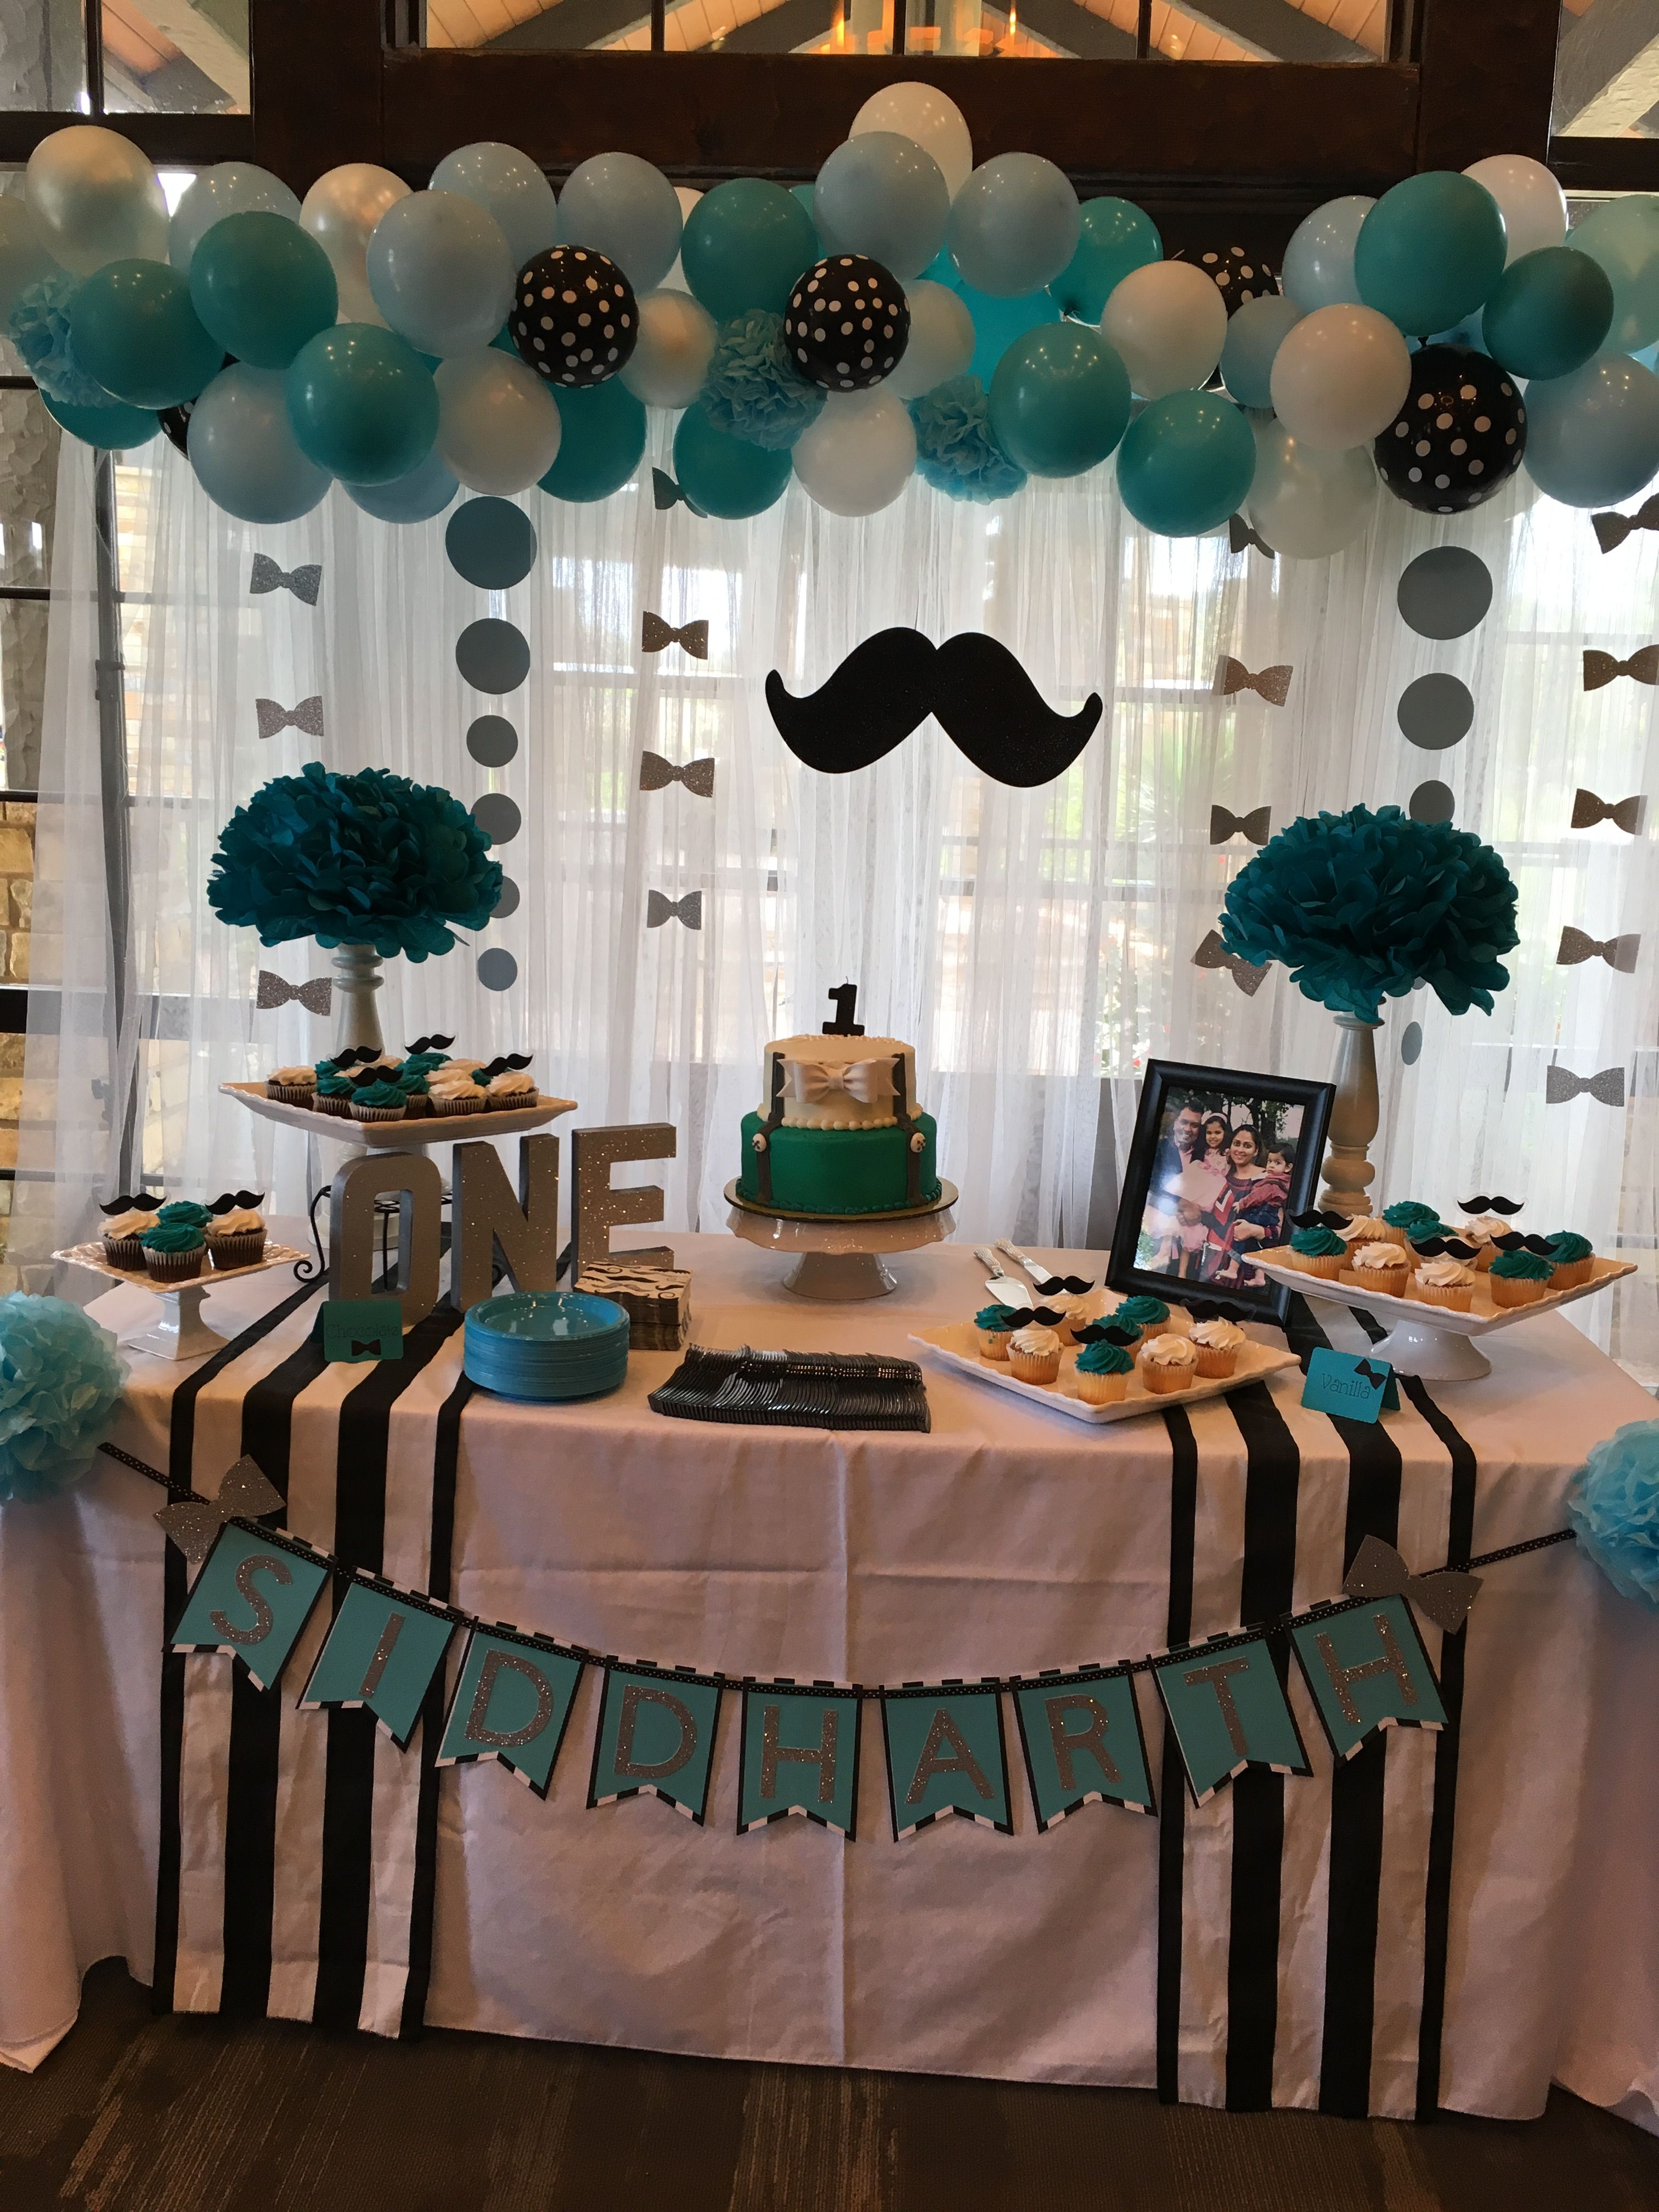 Little Man First Birthday Cake Table With Images Little Man